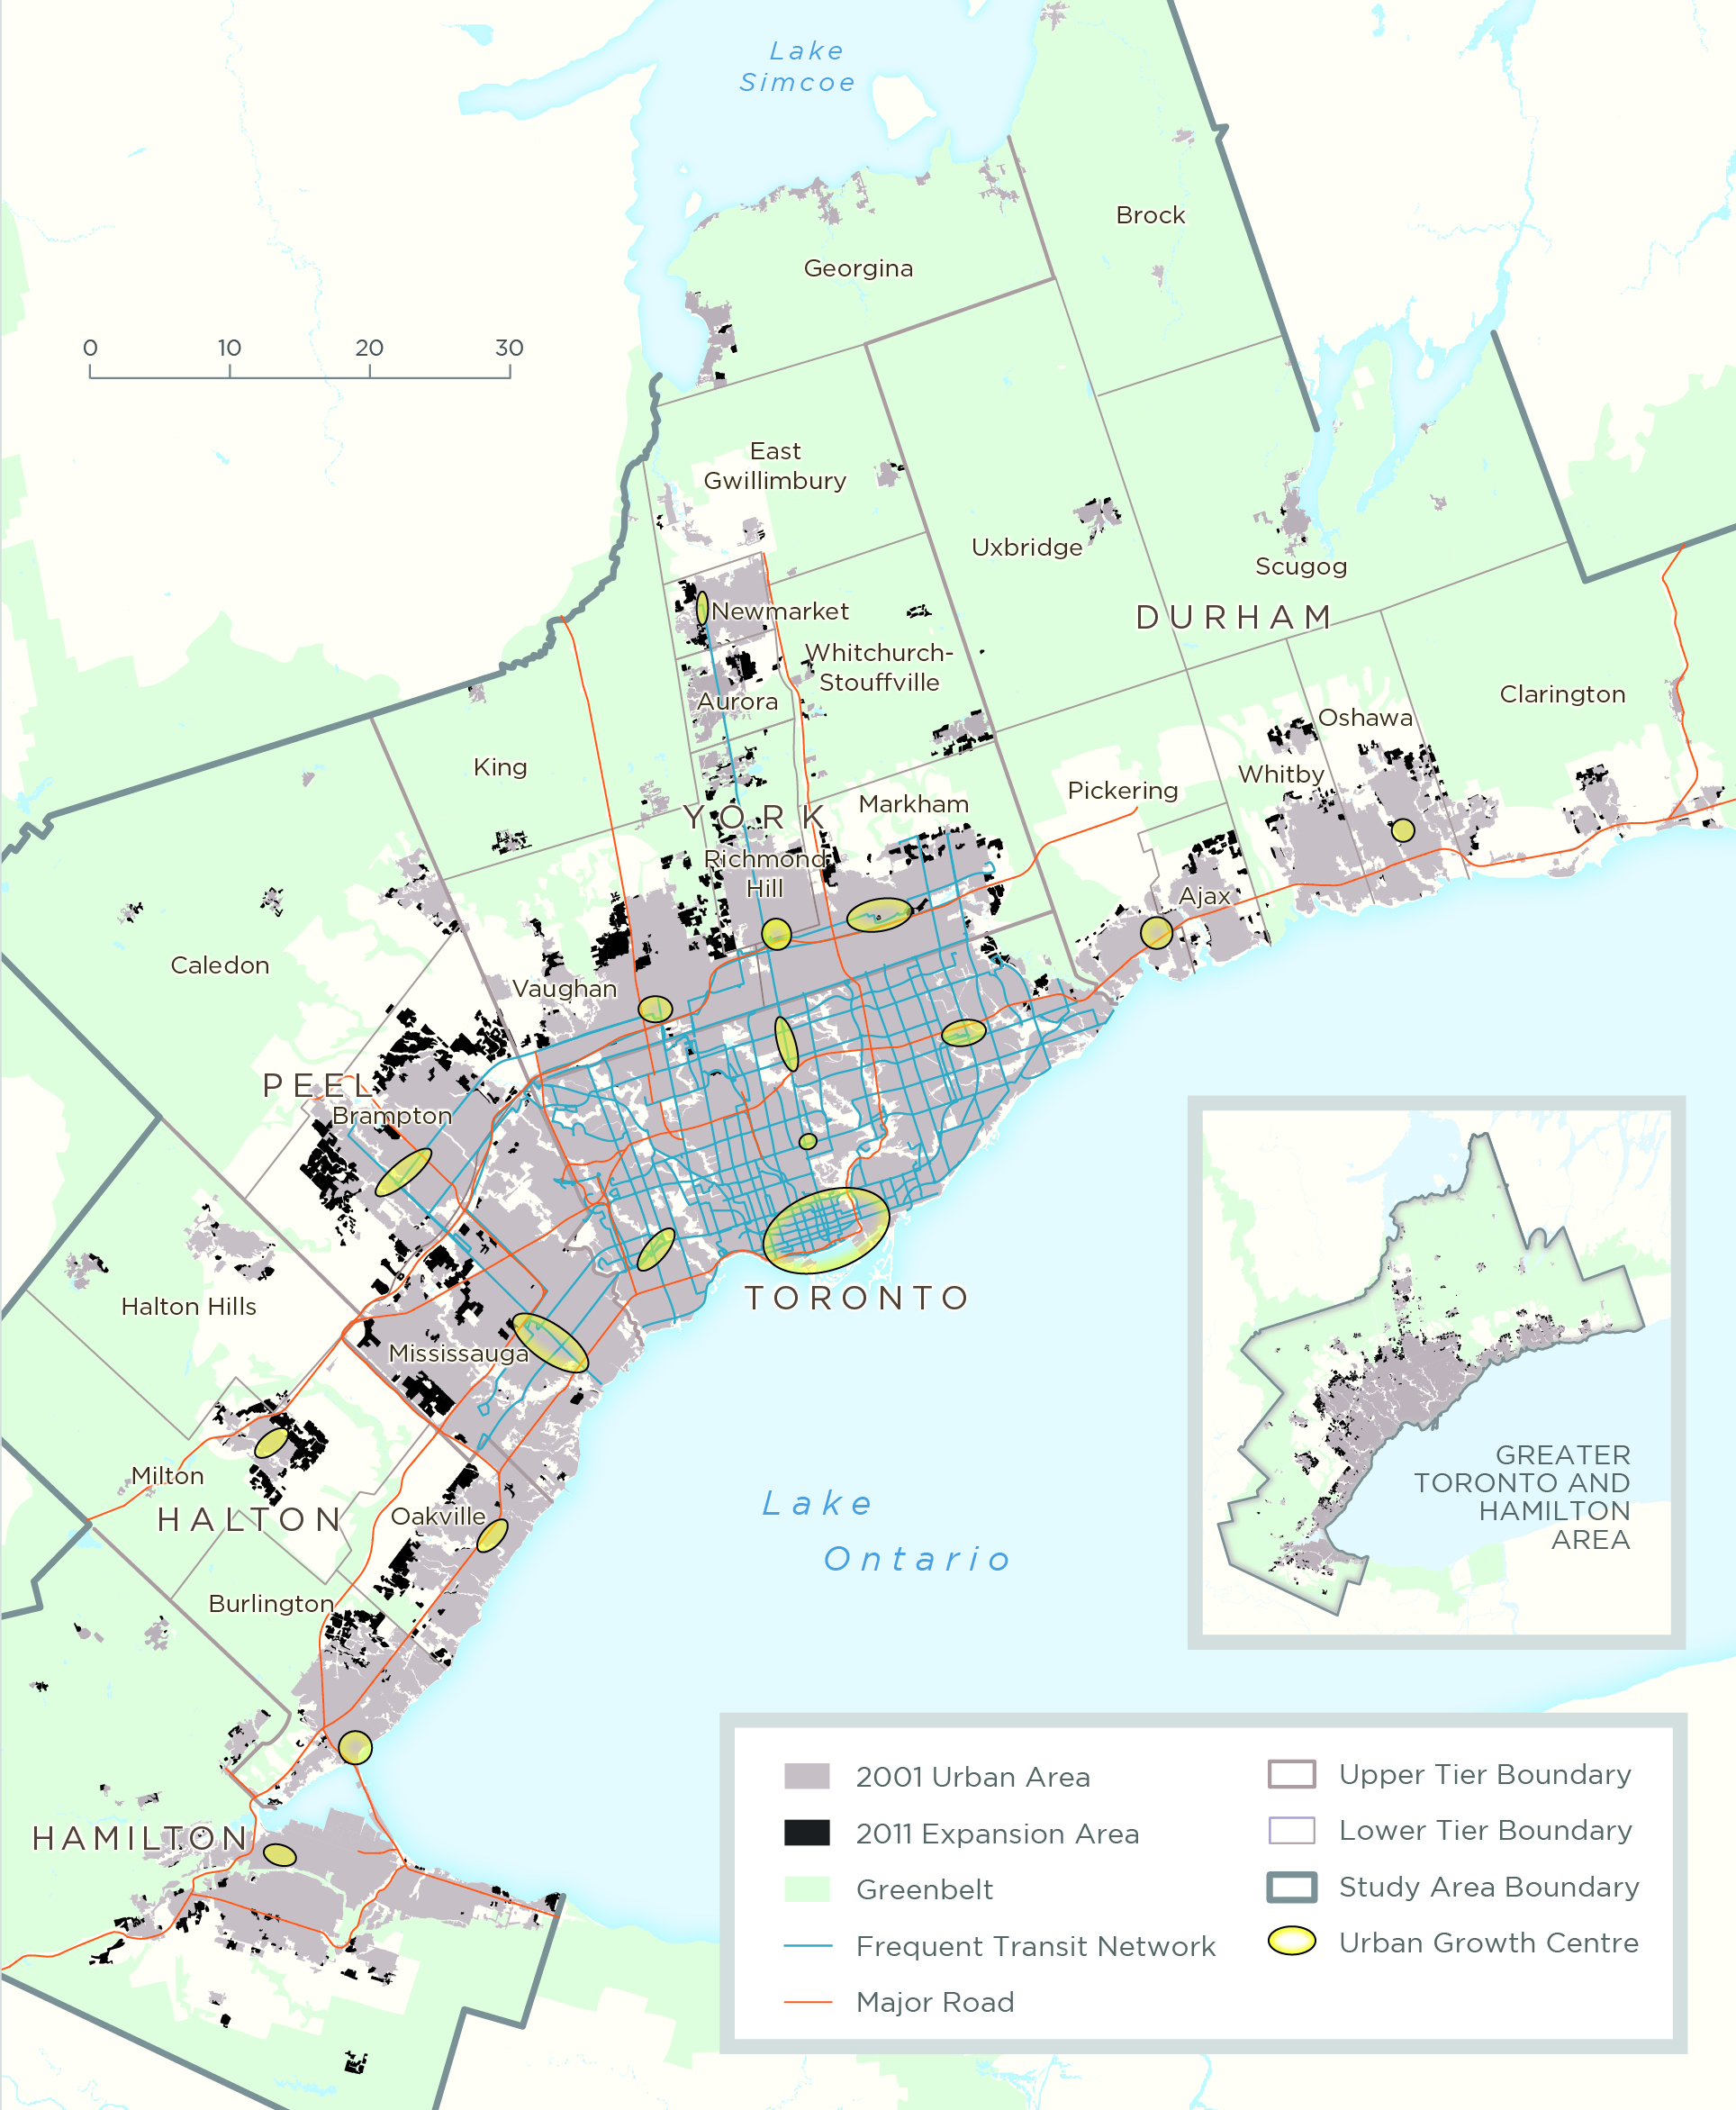 the growing concern of overpopulation in toronto Toronto, july 31, 2012 /cnw/ - forty-two volunteer veterinary clinics in the durham region have partnered with the humane society of durham region to address the cat overpopulation problem with .